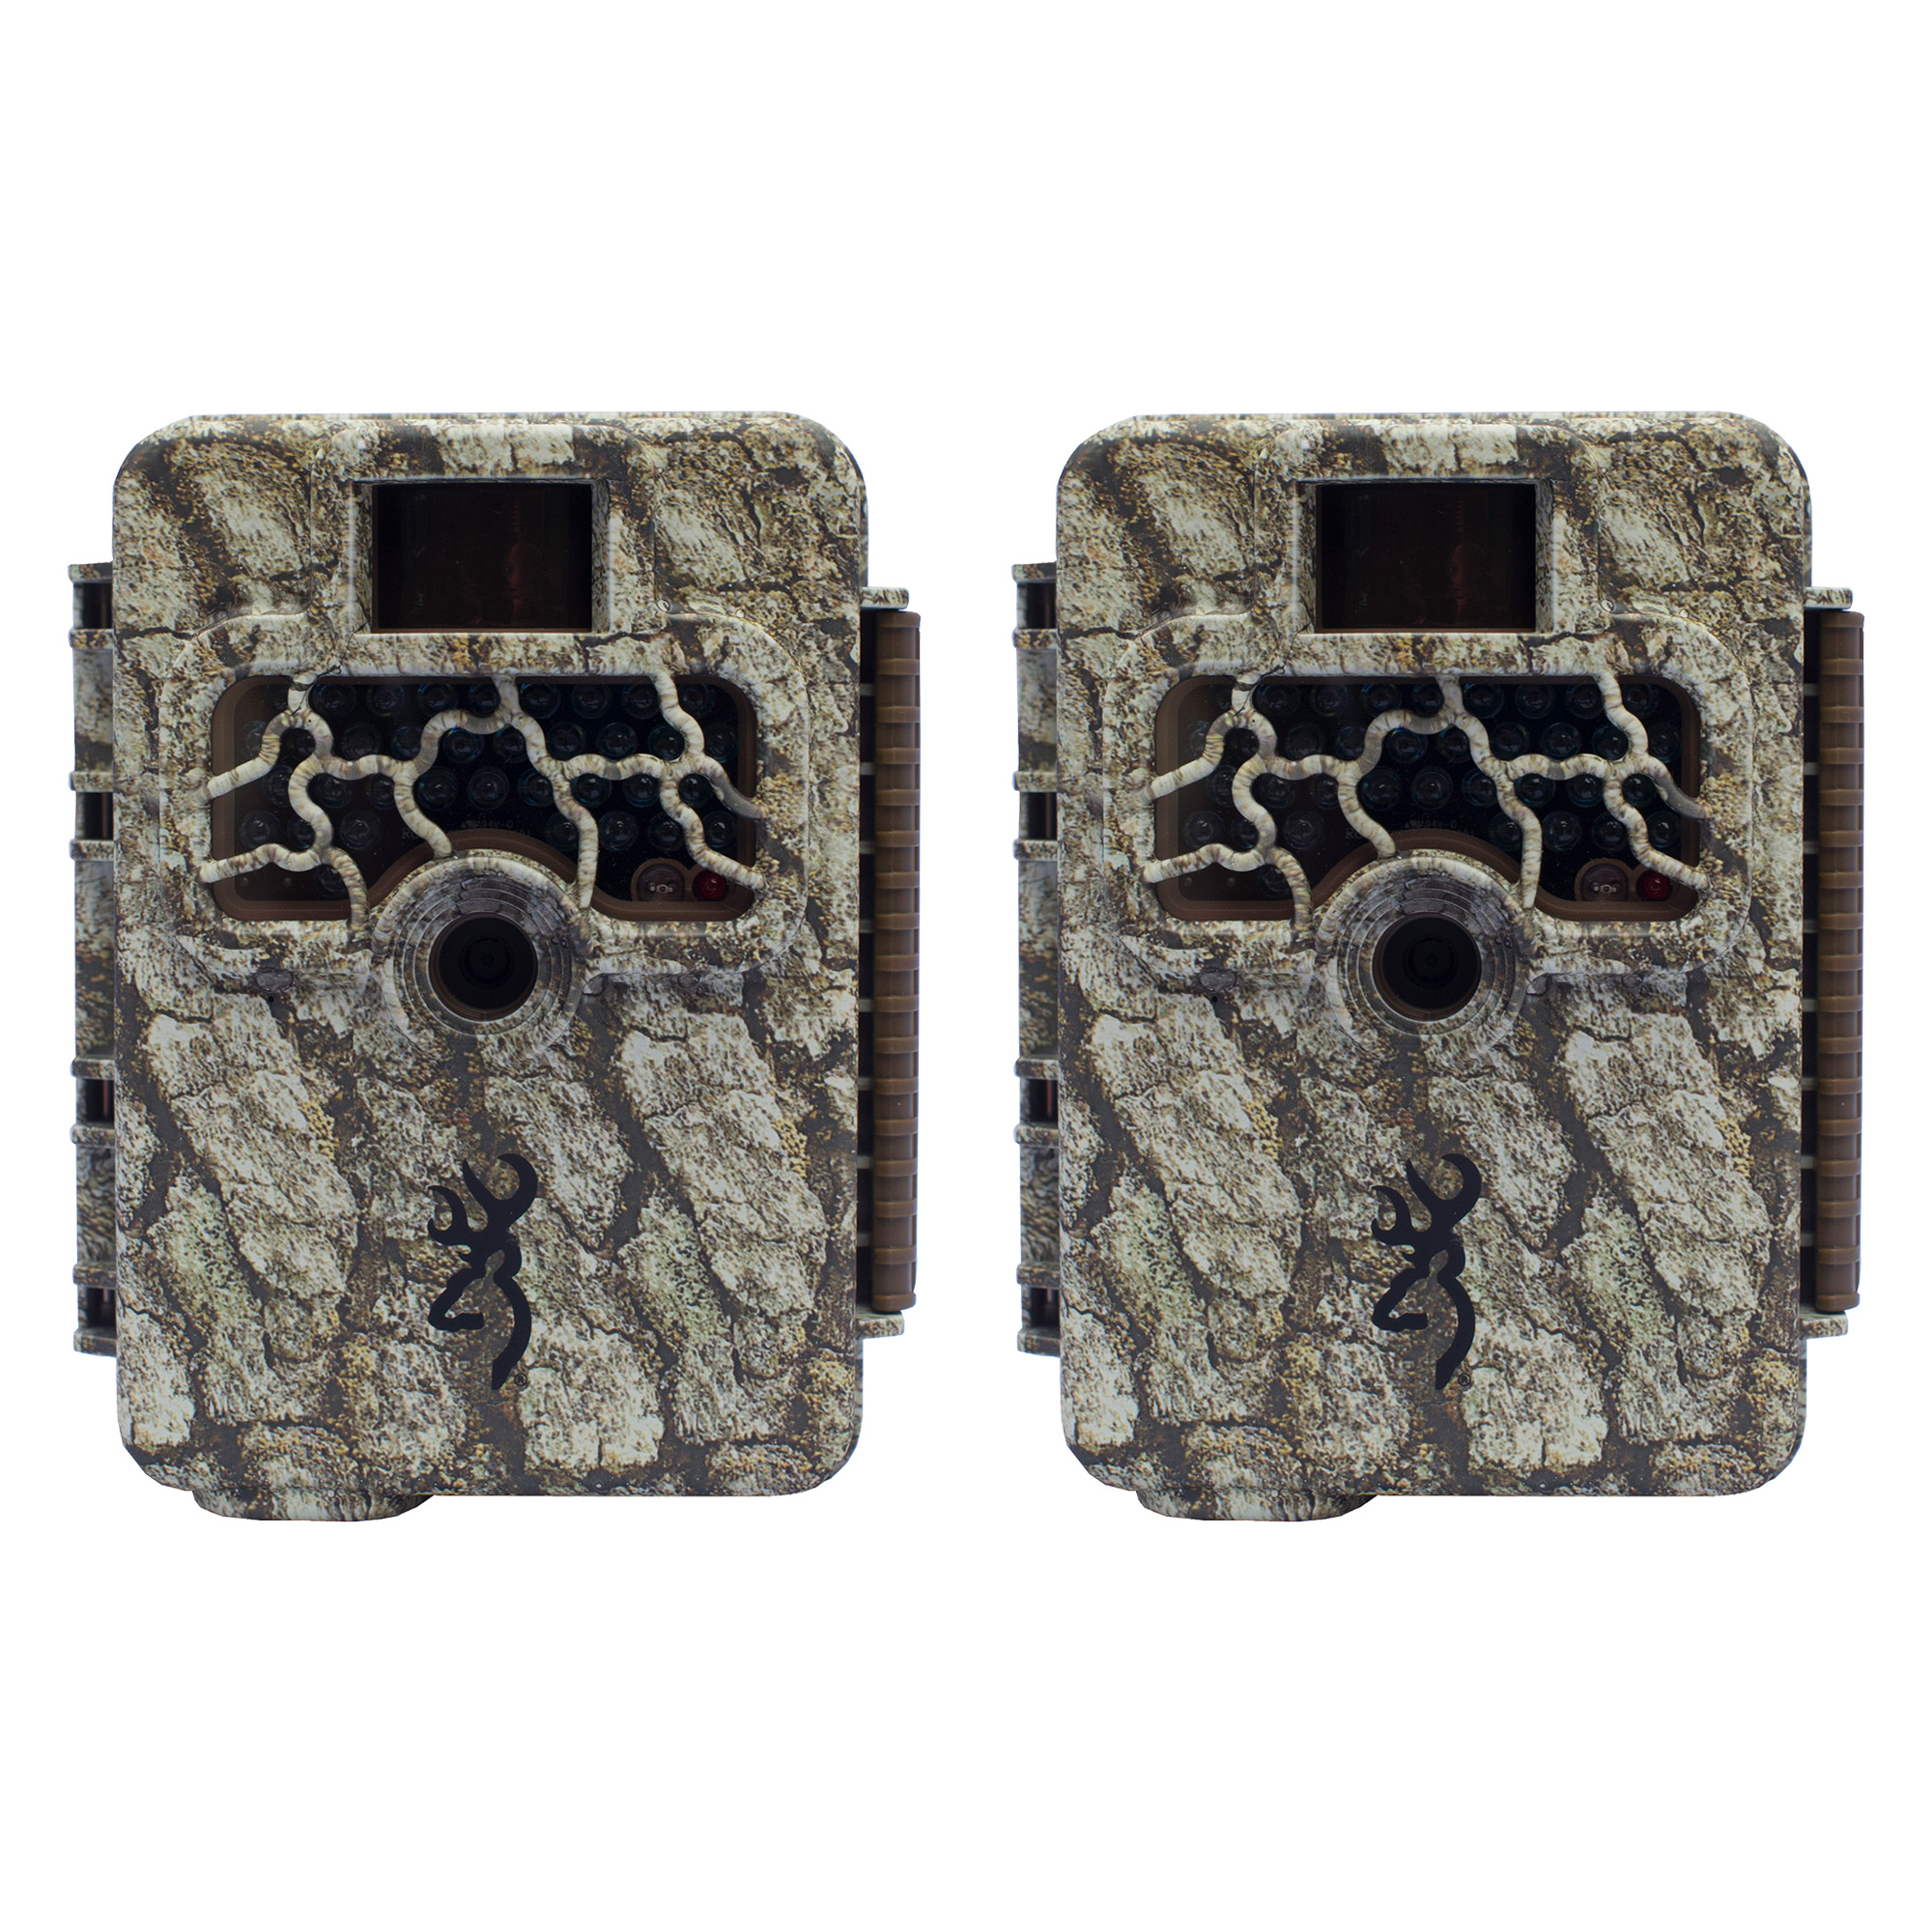 Browning Trail Cameras Command Ops 14MP Infrared Game Camera, 2 Pack | BTC4-14 by Browning Trail Cameras